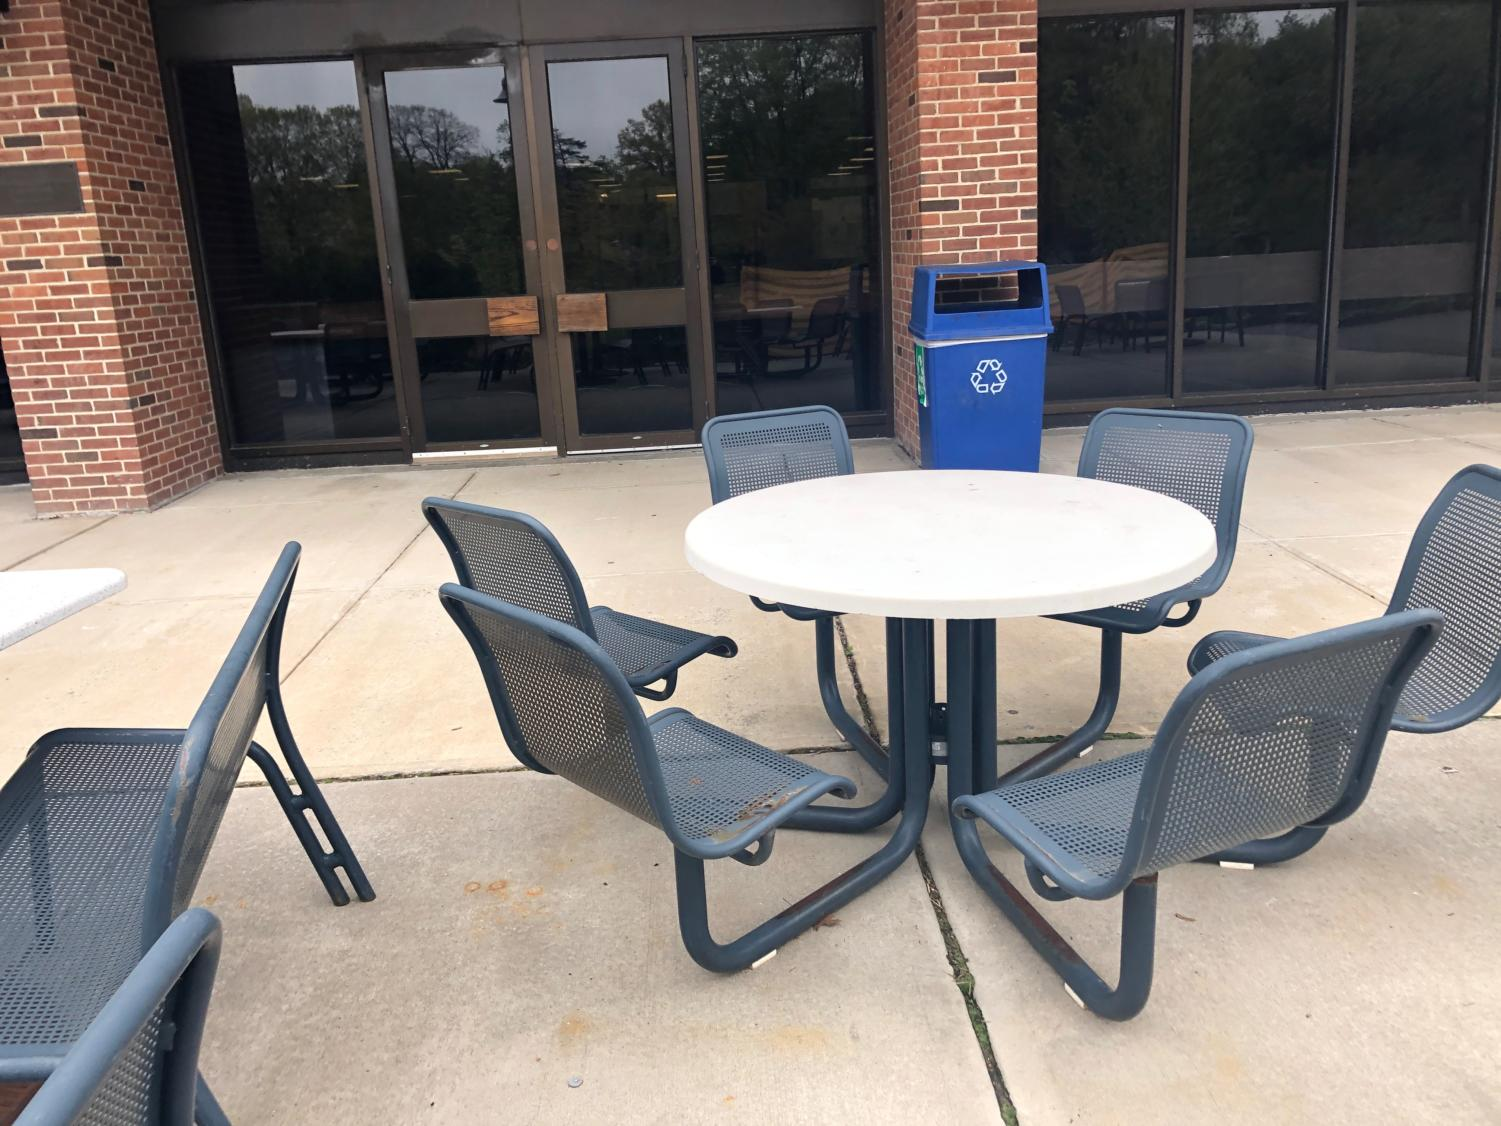 Outside of the Kessel Student Center, there is lots of opportunities for students to sit and enjoy the weather.